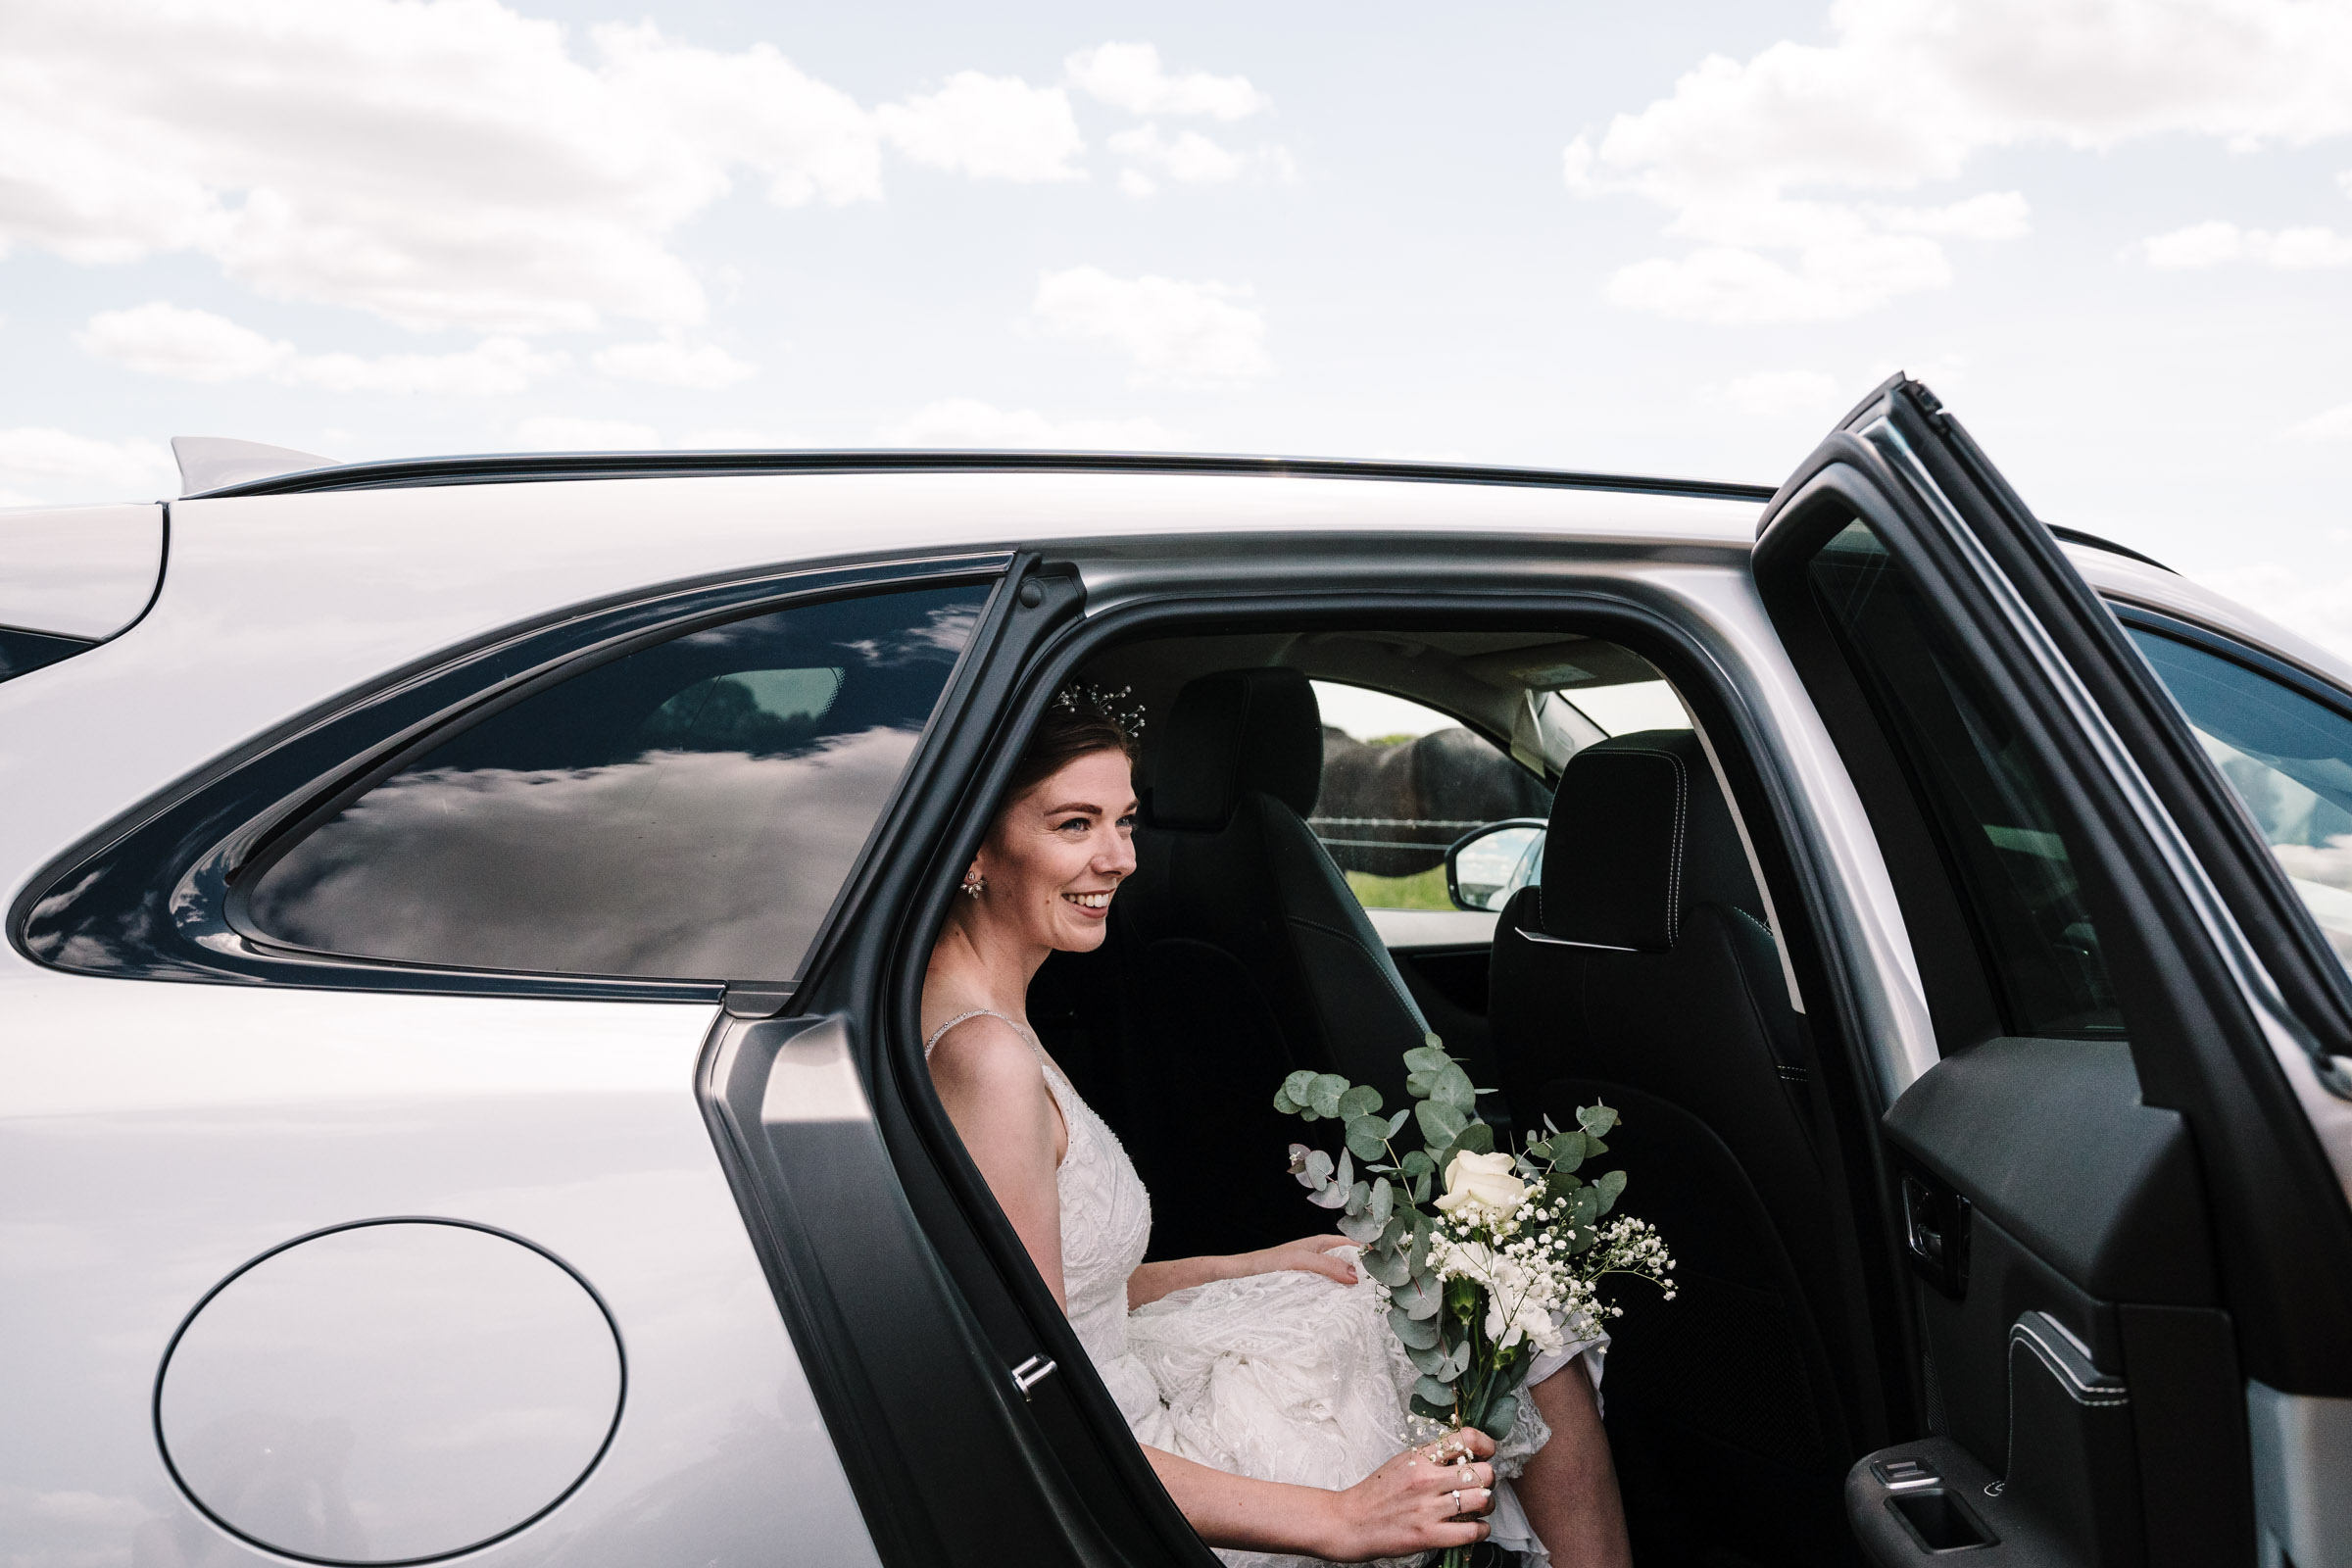 bride arriving at her wedding, getting out of the wedding car